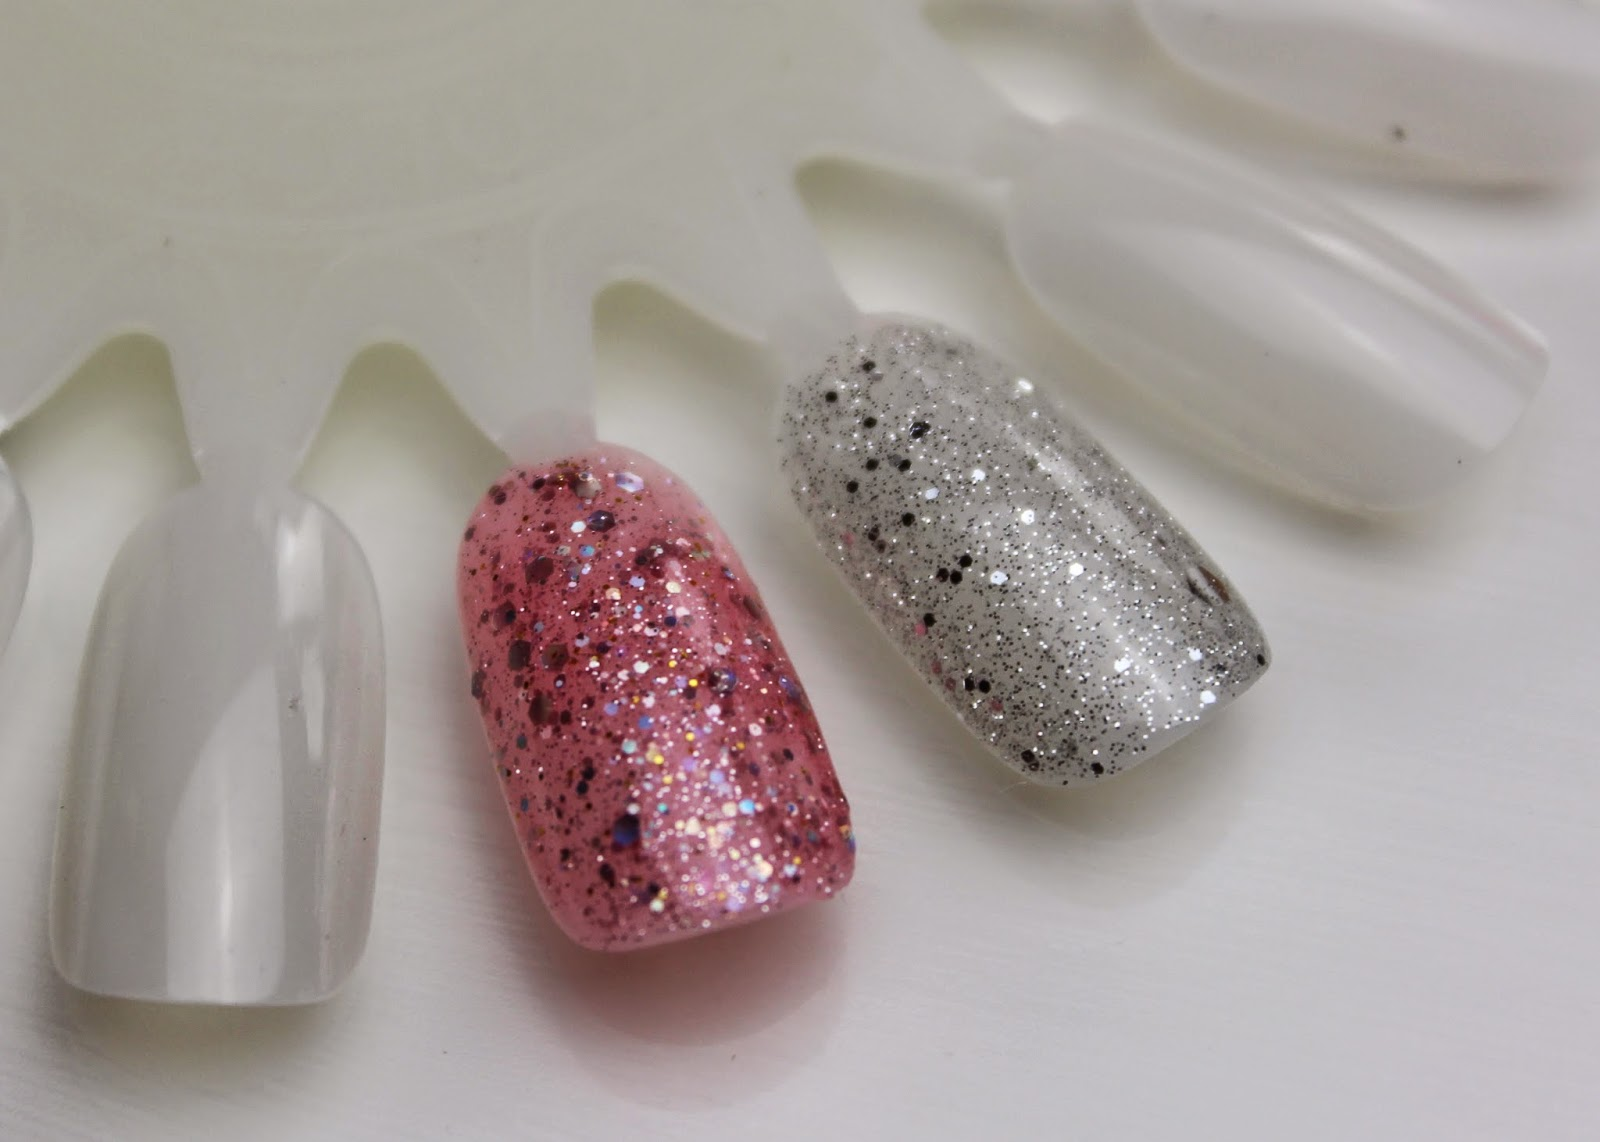 : NYK1 Secrets Nailac at home professional gel polish system review